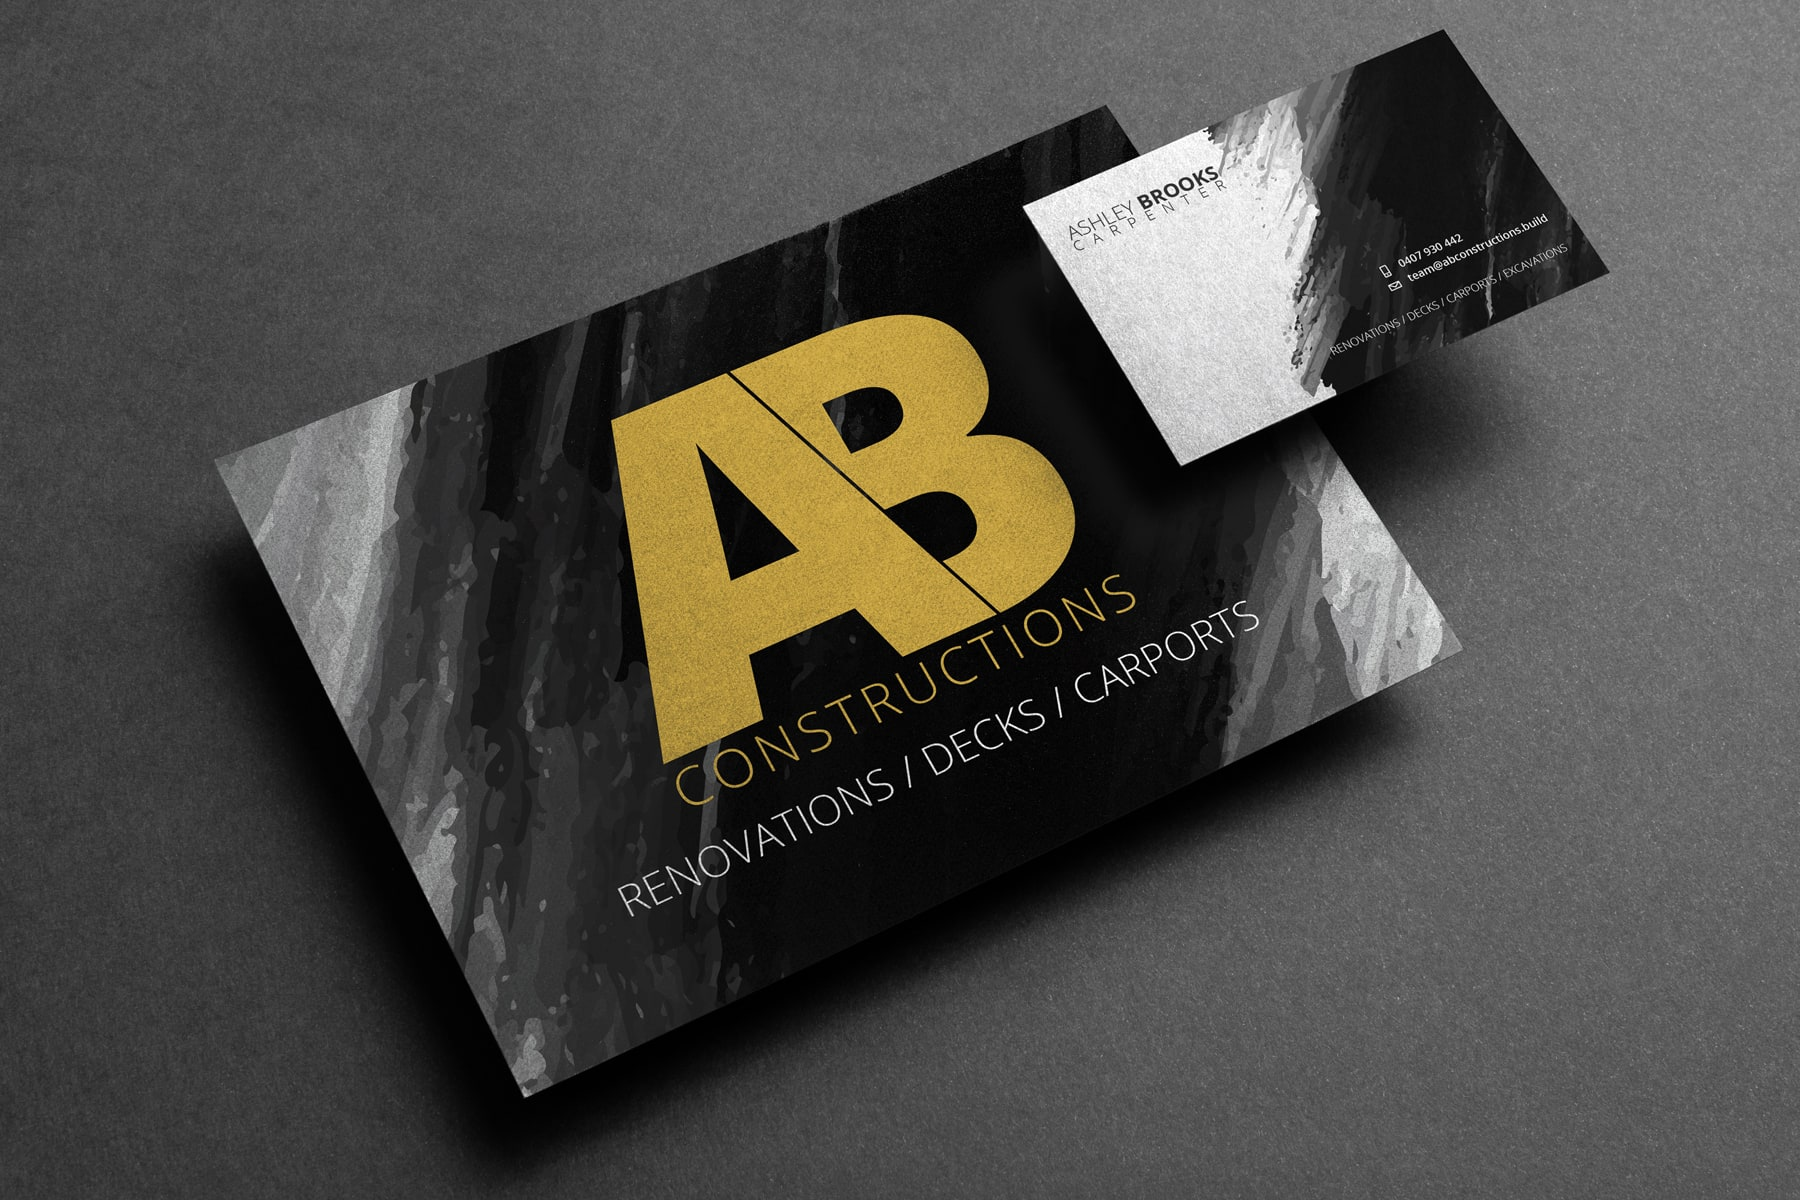 AB Constructions Business cards